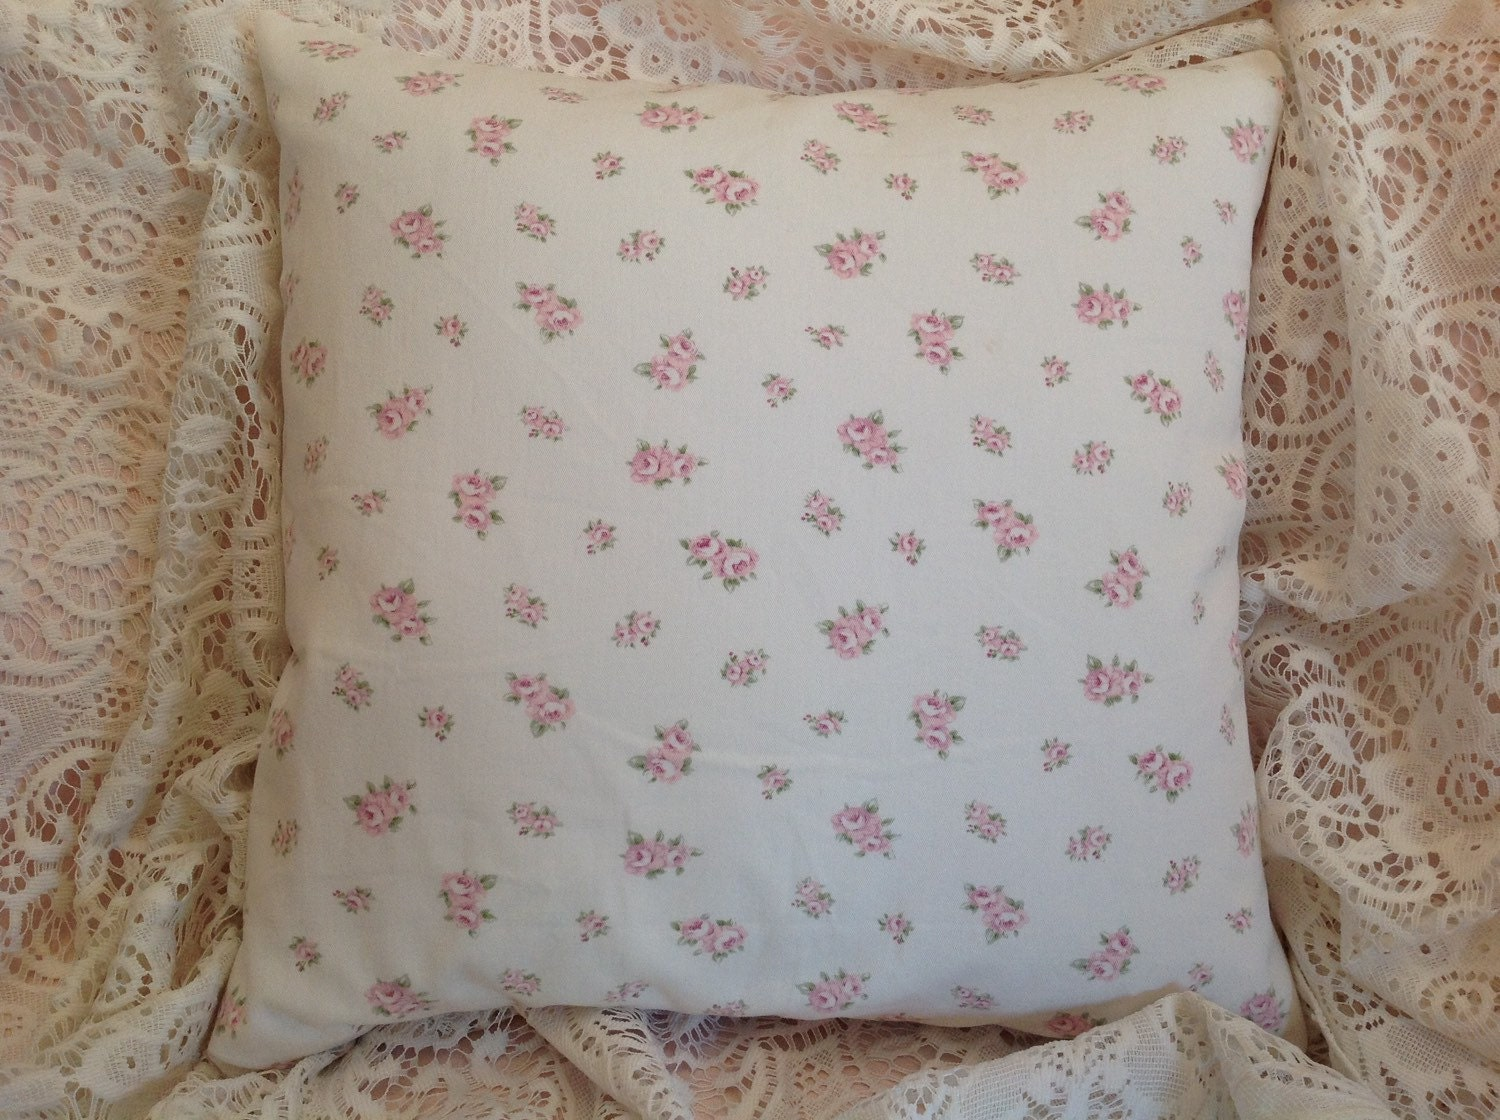 Shabby Chic Pillow Images : Shabby Chic Pillow cover Darling pink and by rosesofyesteryear